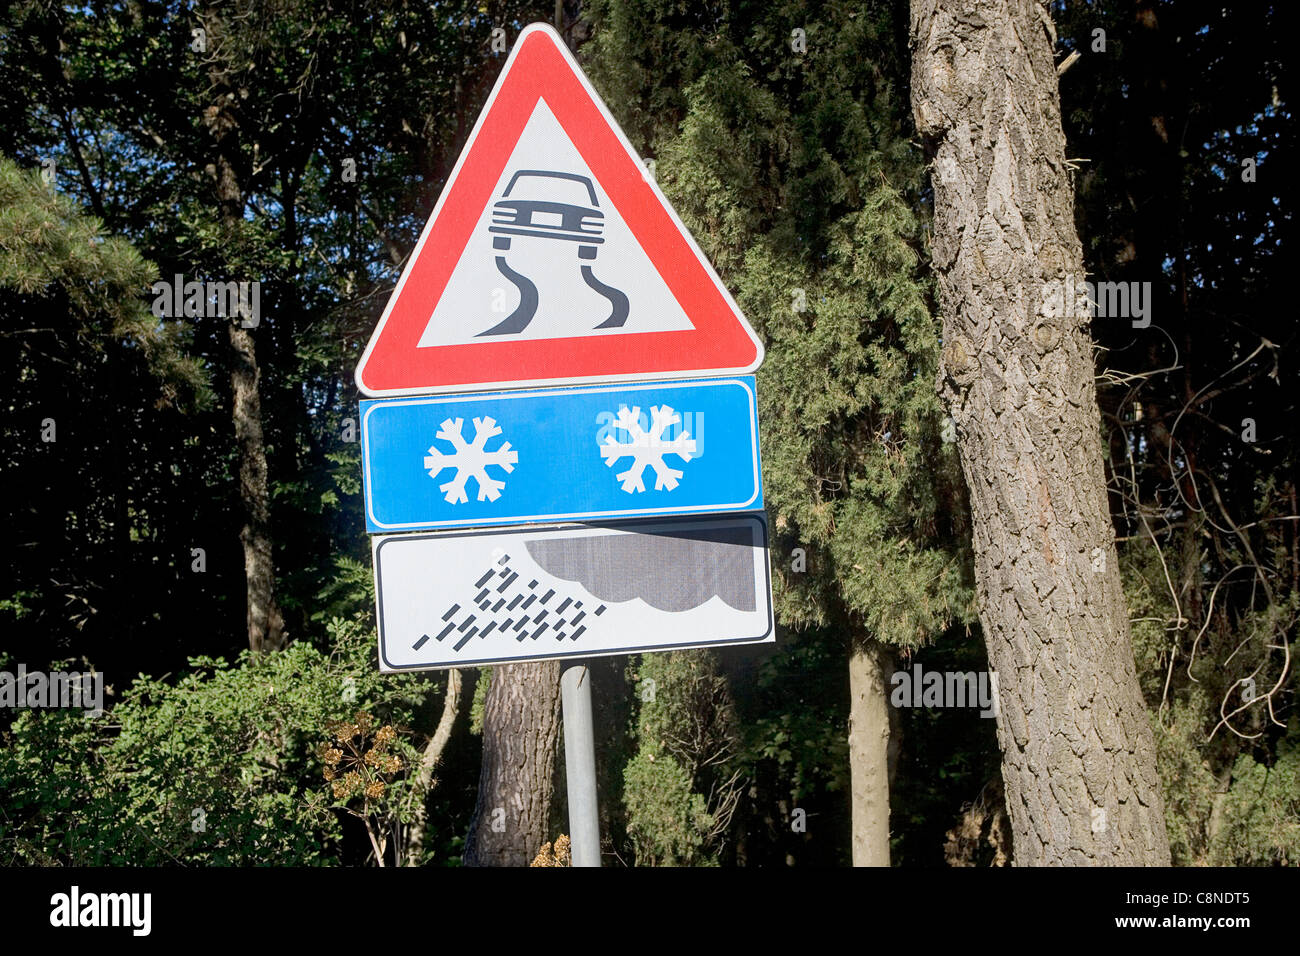 Italy, snow and slippery road warning signs - Stock Image